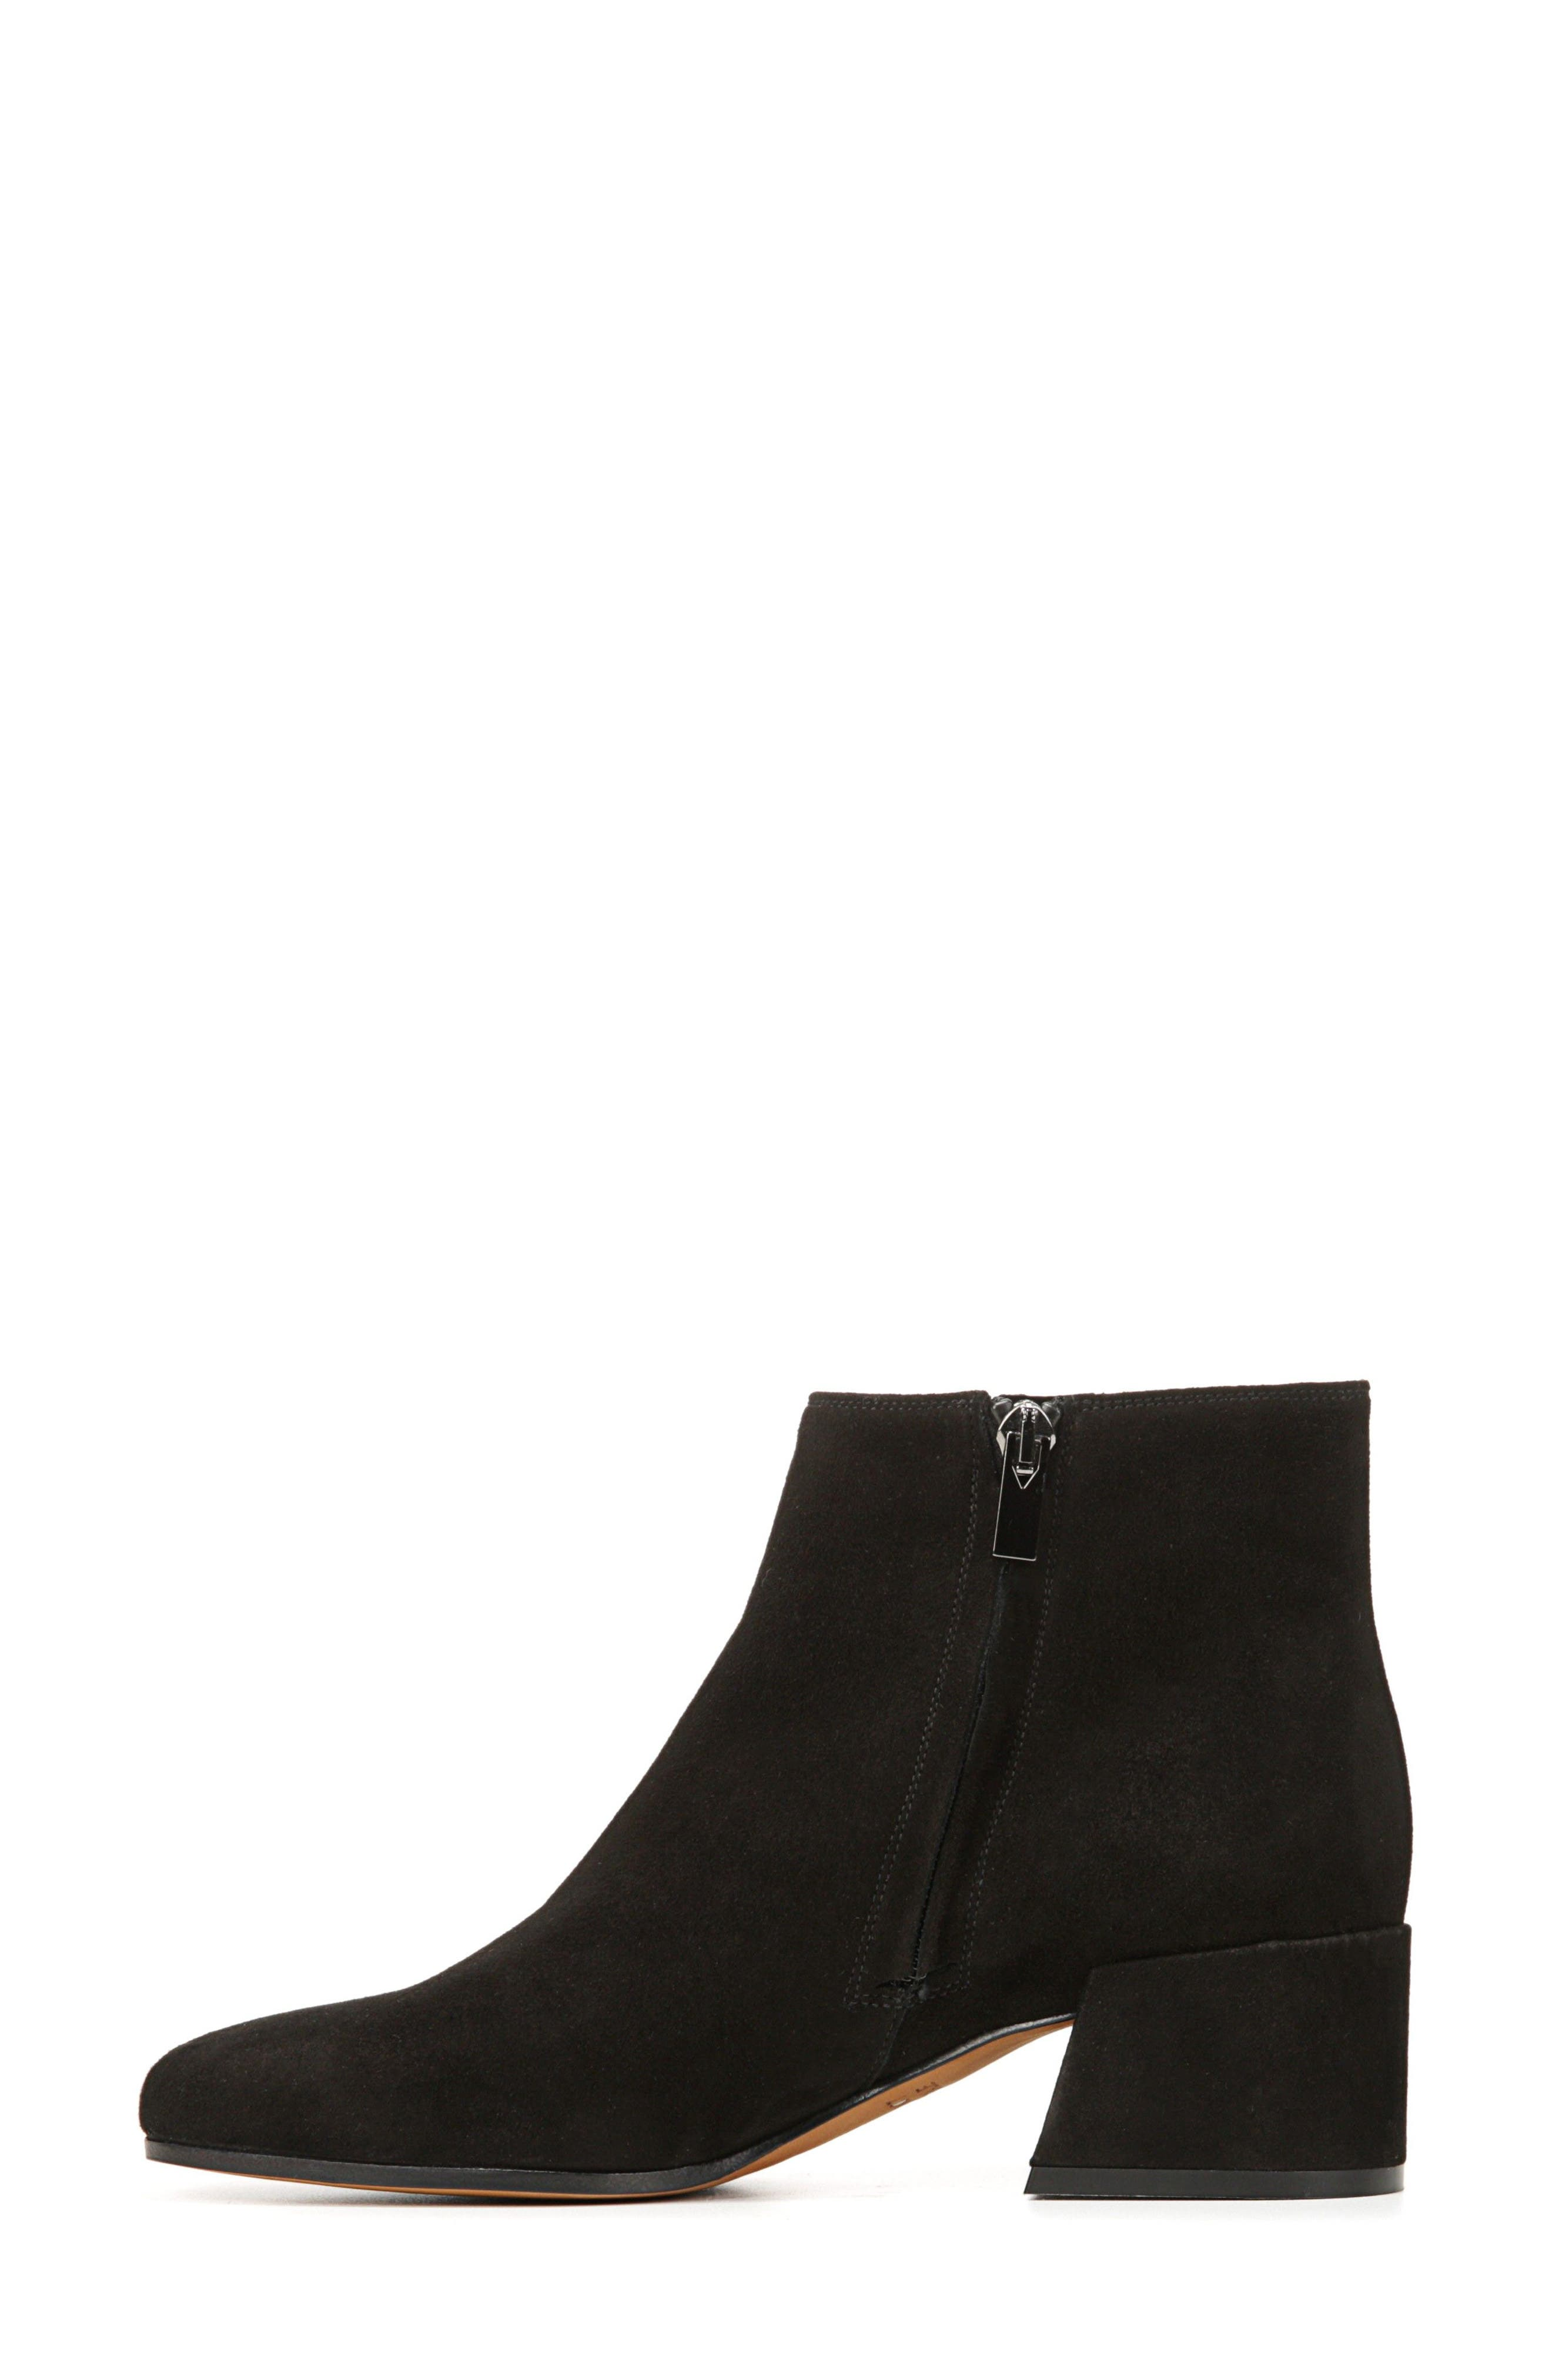 Ostend Bootie,                             Alternate thumbnail 9, color,